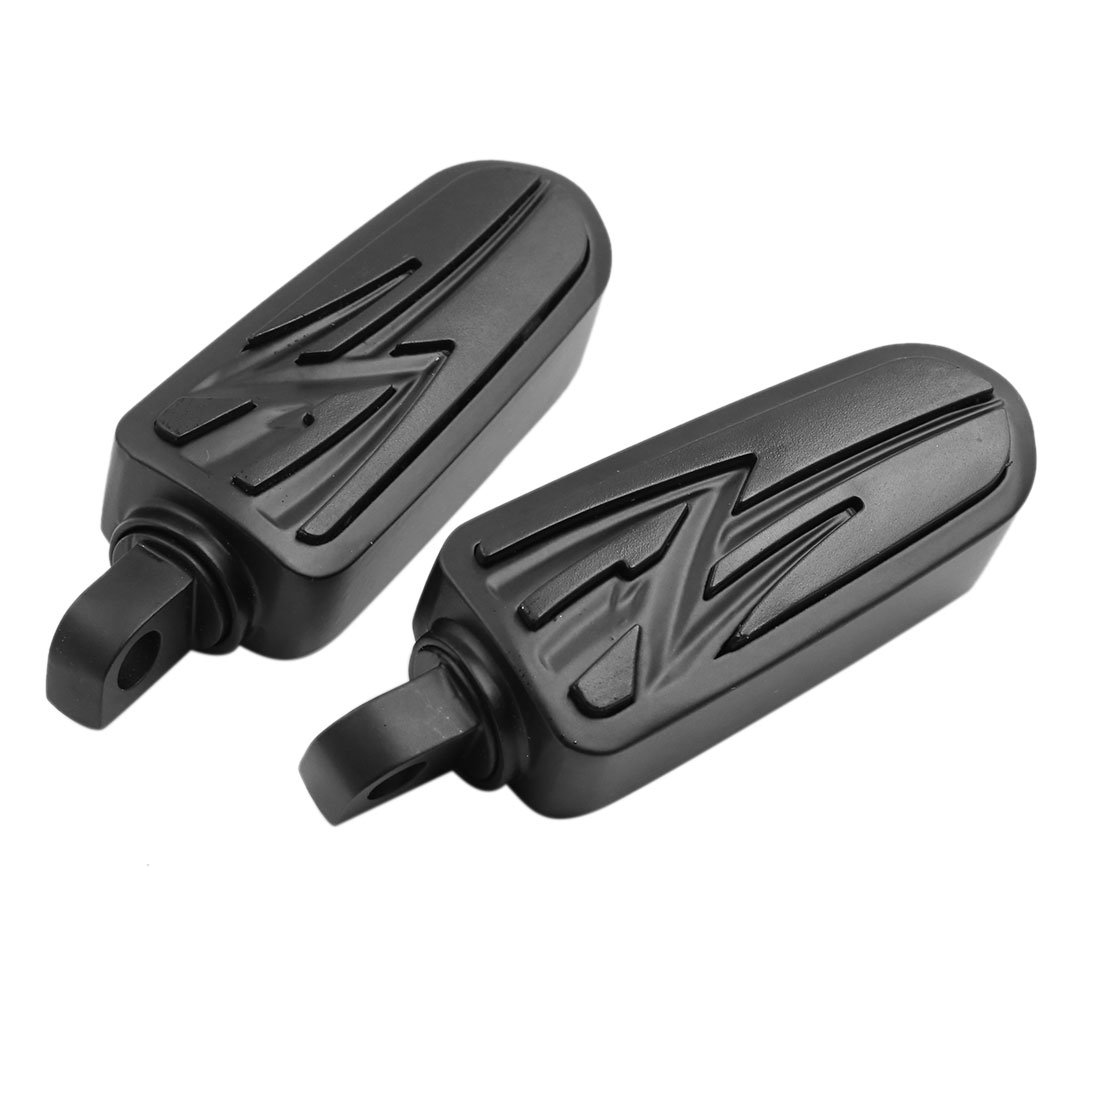 F FIERCE CYCLE 2pcs Aluminum Alloy Rubber Motorcycle Foot Pegs Footrest Pedal Black for Harley Davidson .